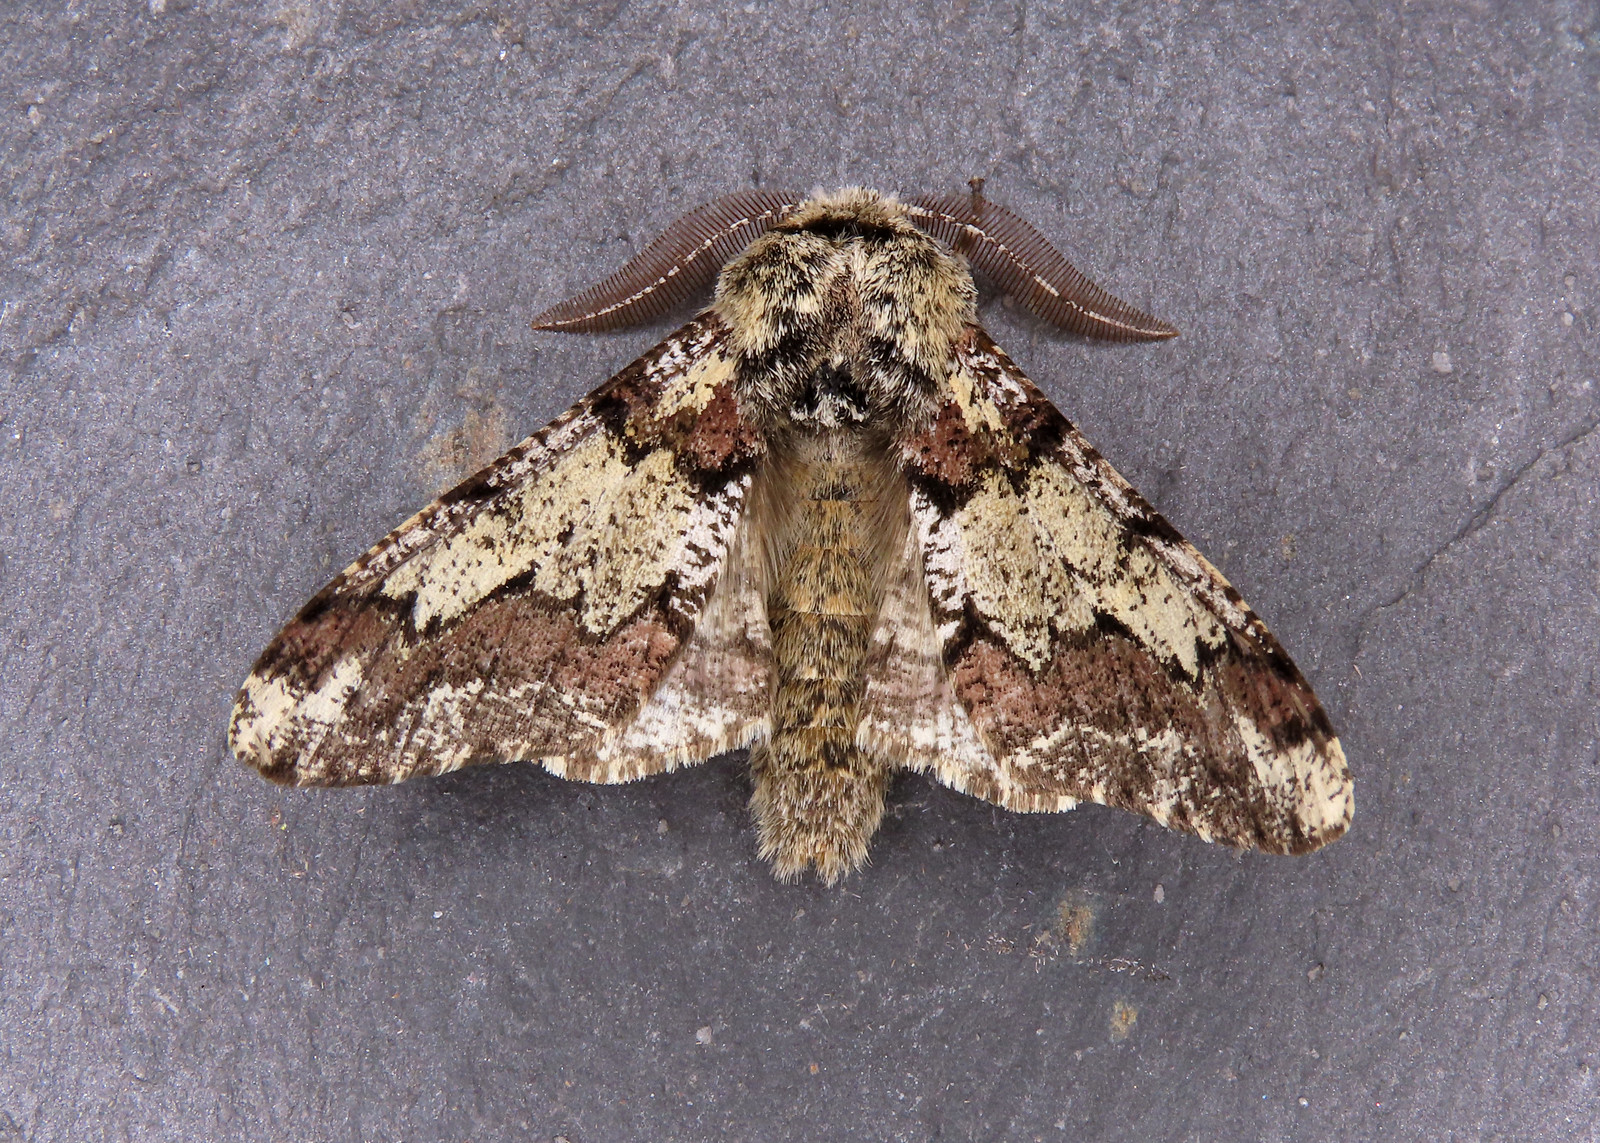 70.251 Oak Beauty - Biston strataria